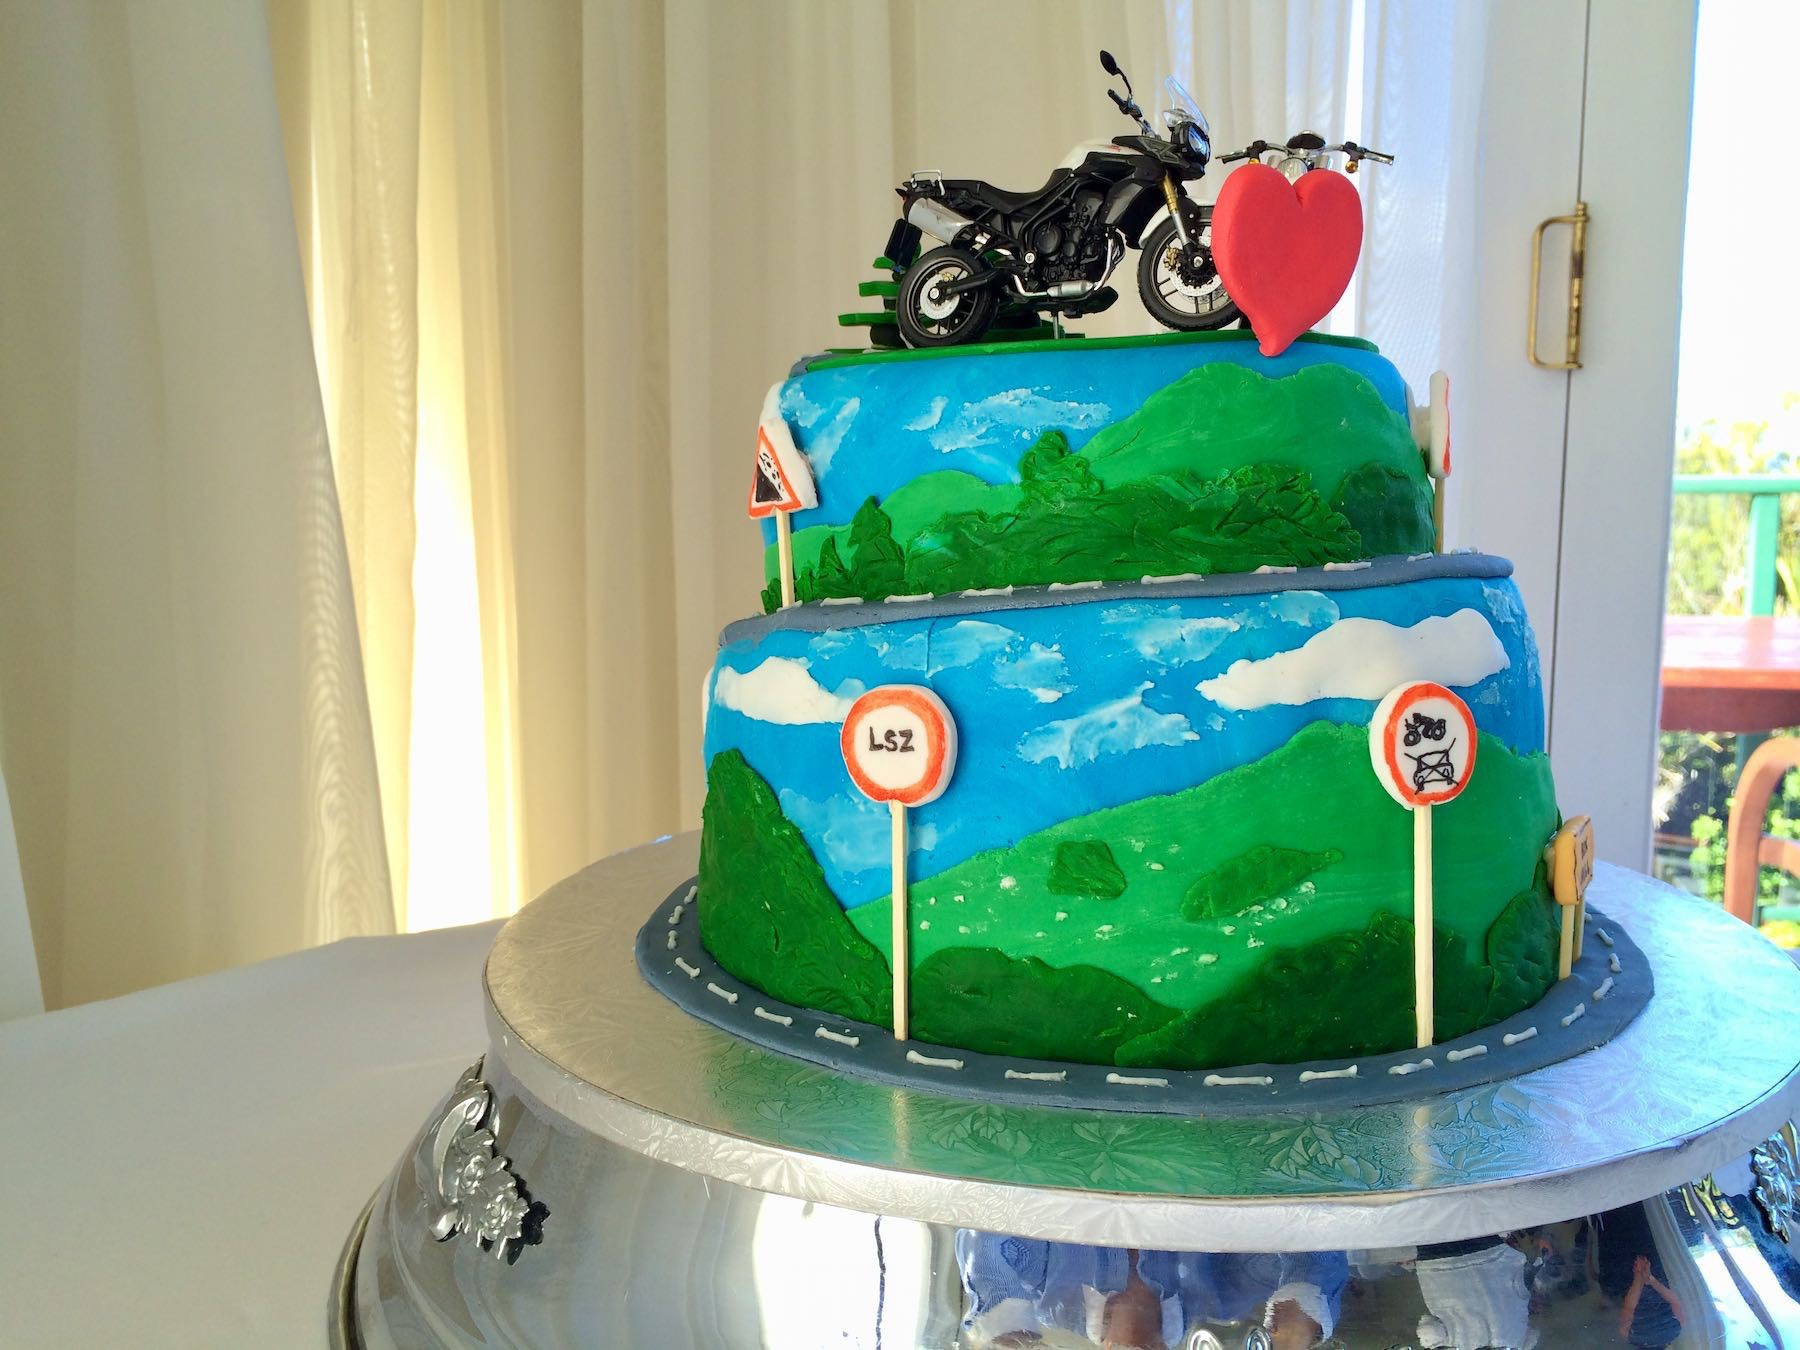 Two-layered wedding cake in blues and greens with a road winding up a hill, road signs and two bikes on top.